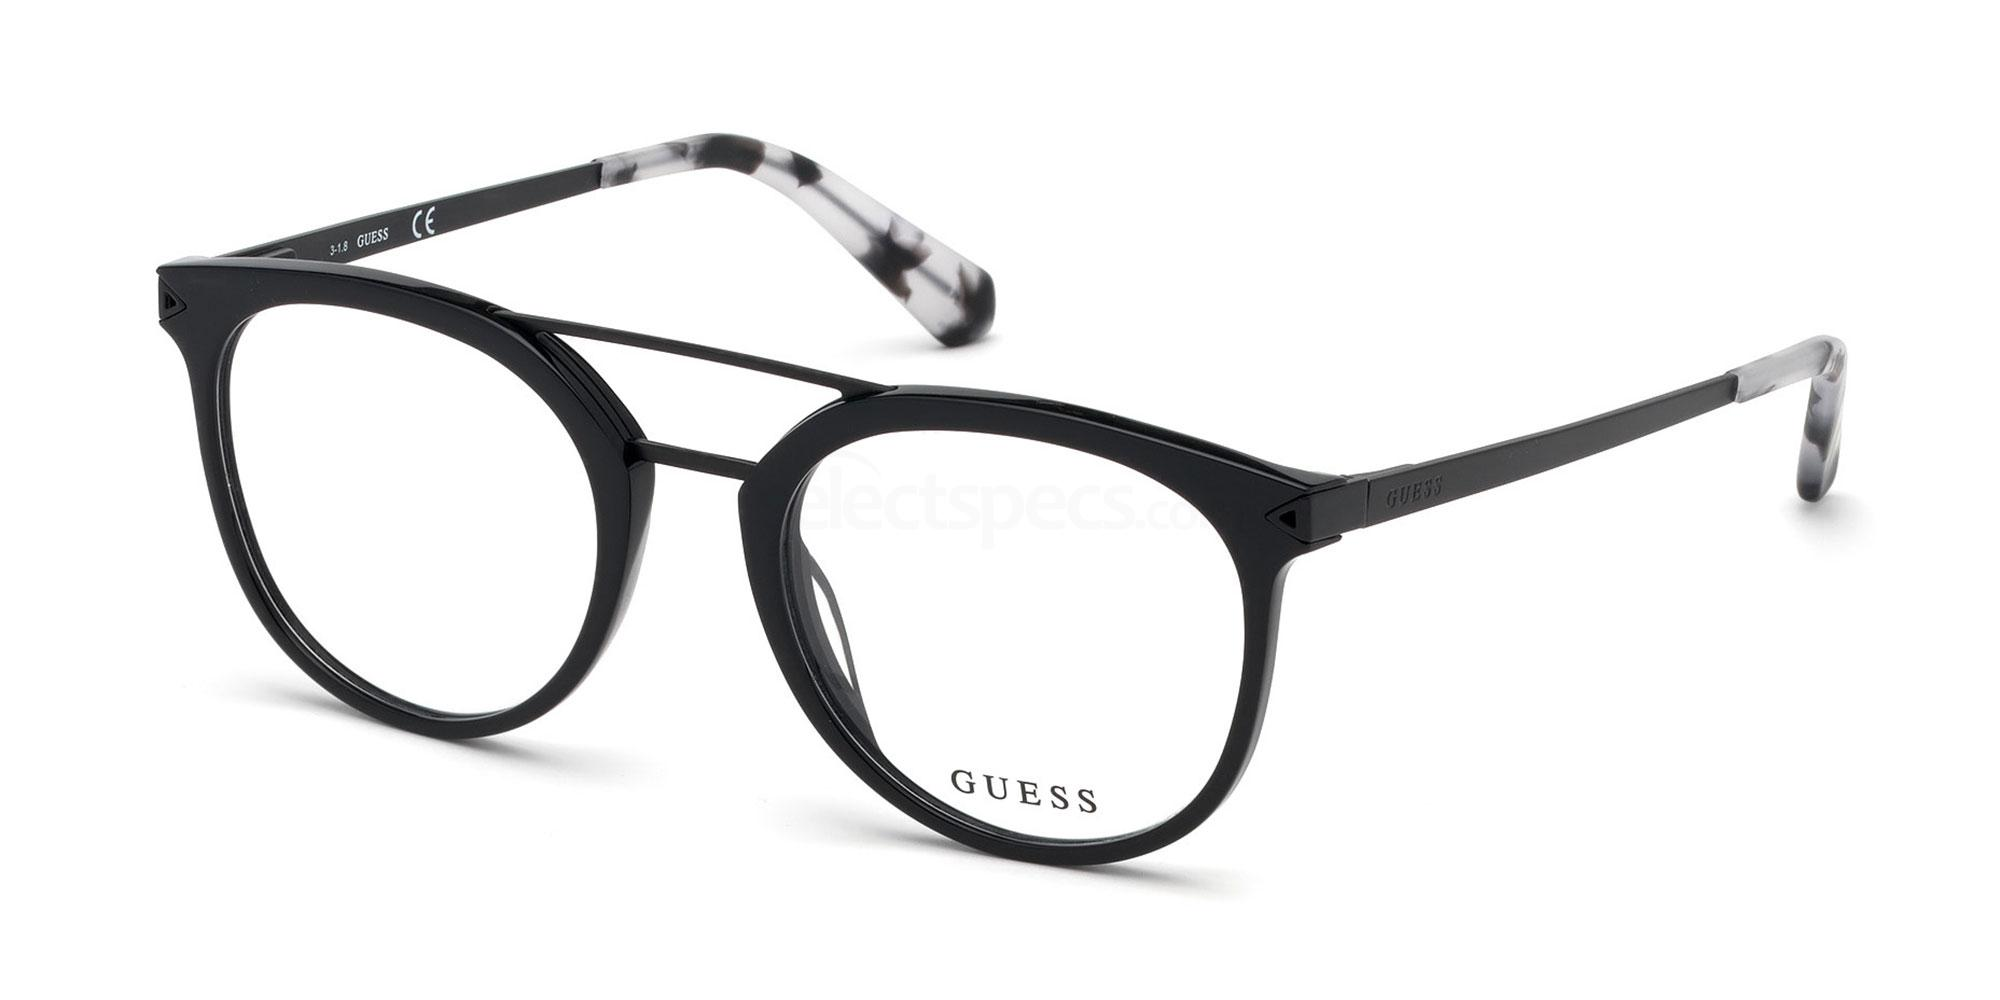 005 GU1964 Glasses, Guess